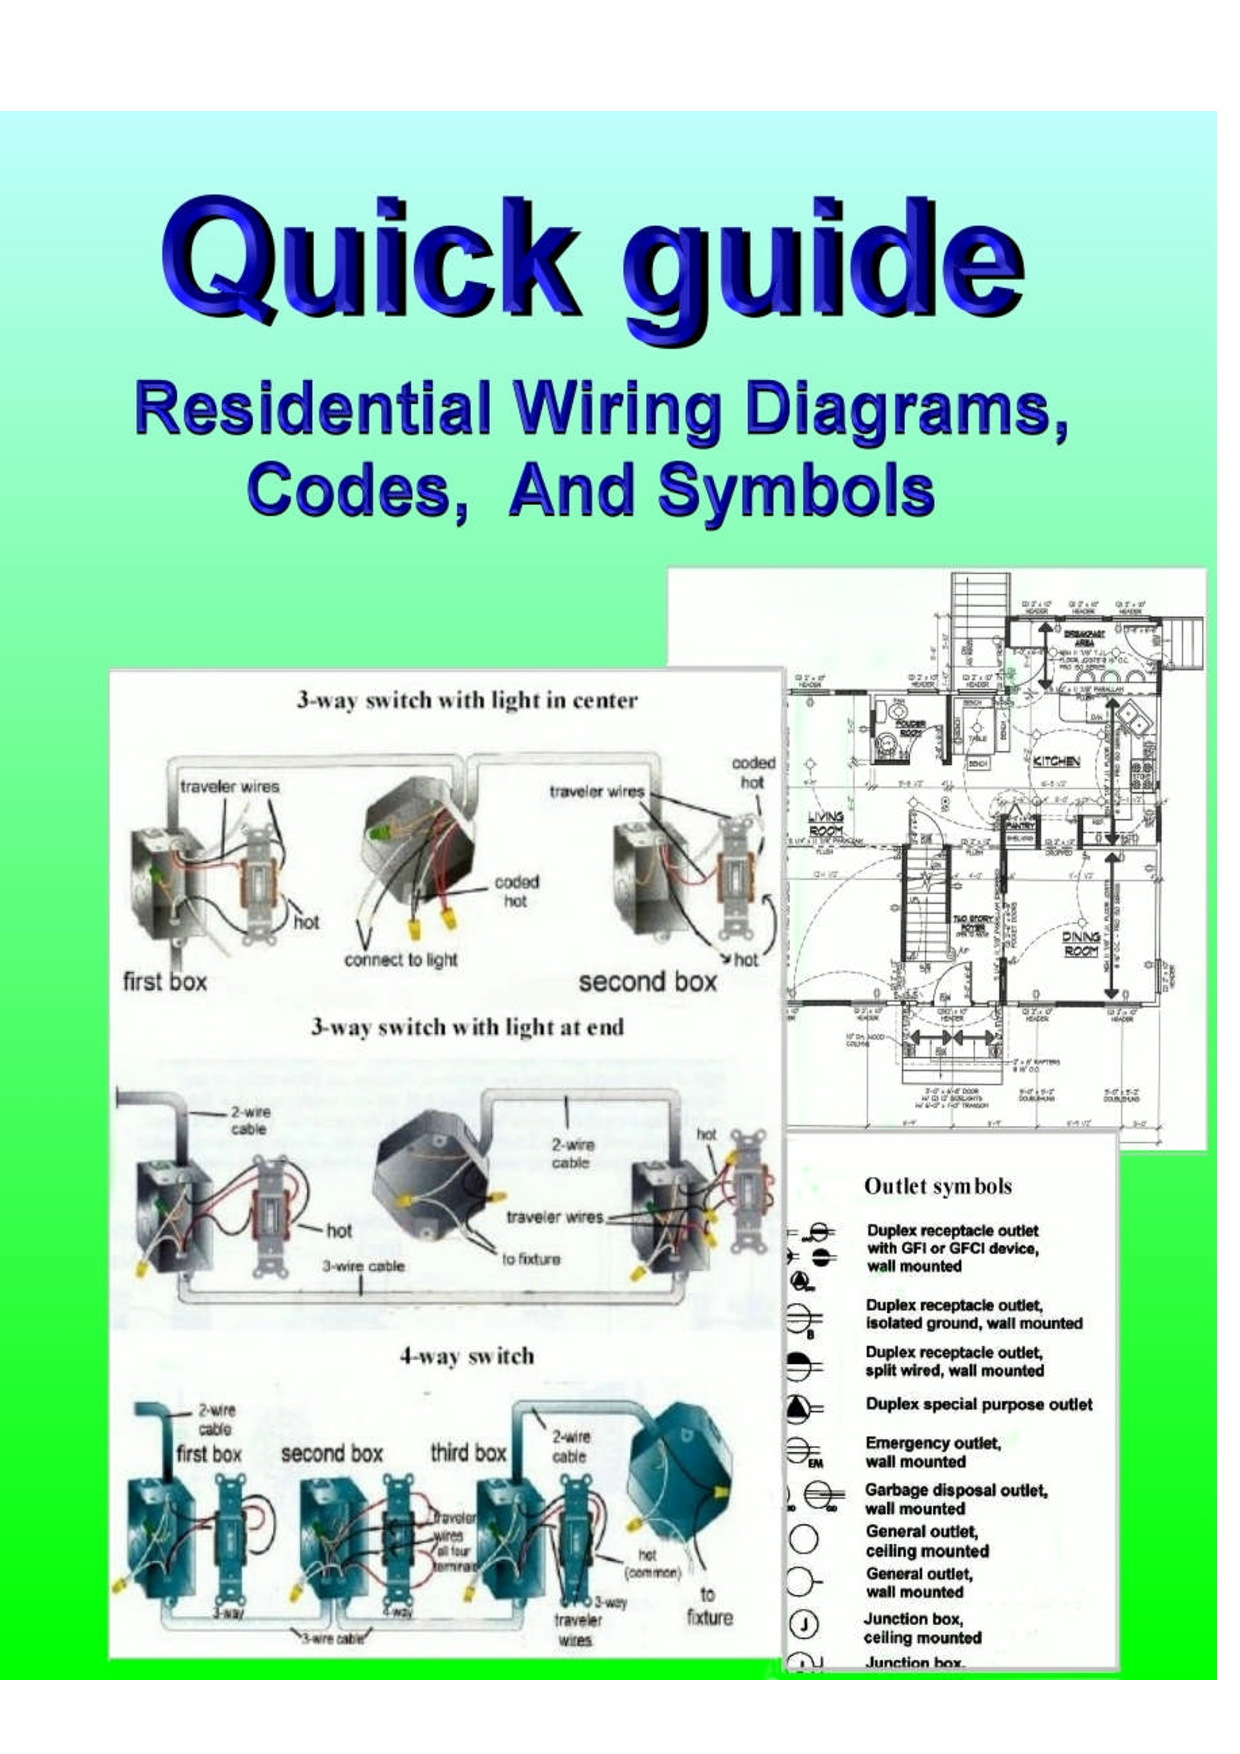 home electrical wiring diagrams pdf download legal documents 39 pages with  many diagrams and illustrations  a step by step home wiring guide with  diagrams,